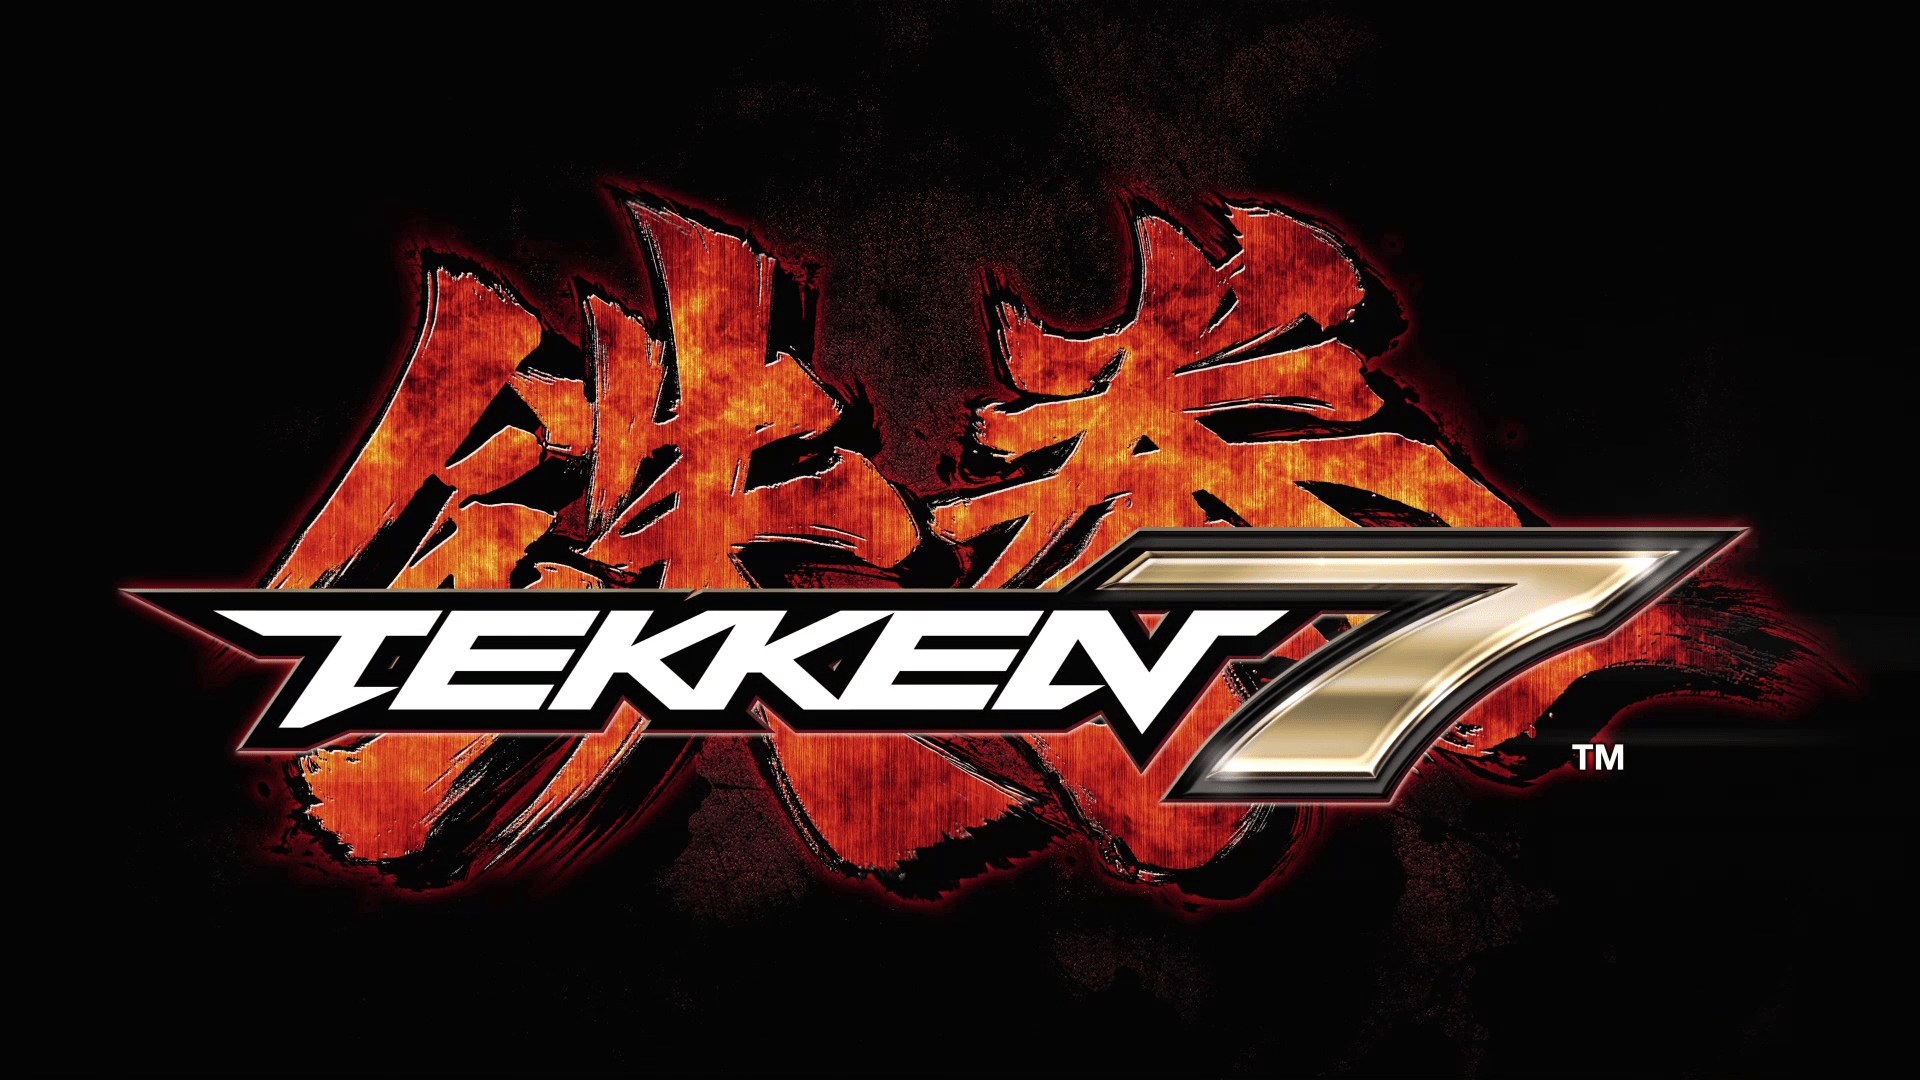 COMING SOON – TEKKEN 7 in PS4, X-BOX1 and PC!